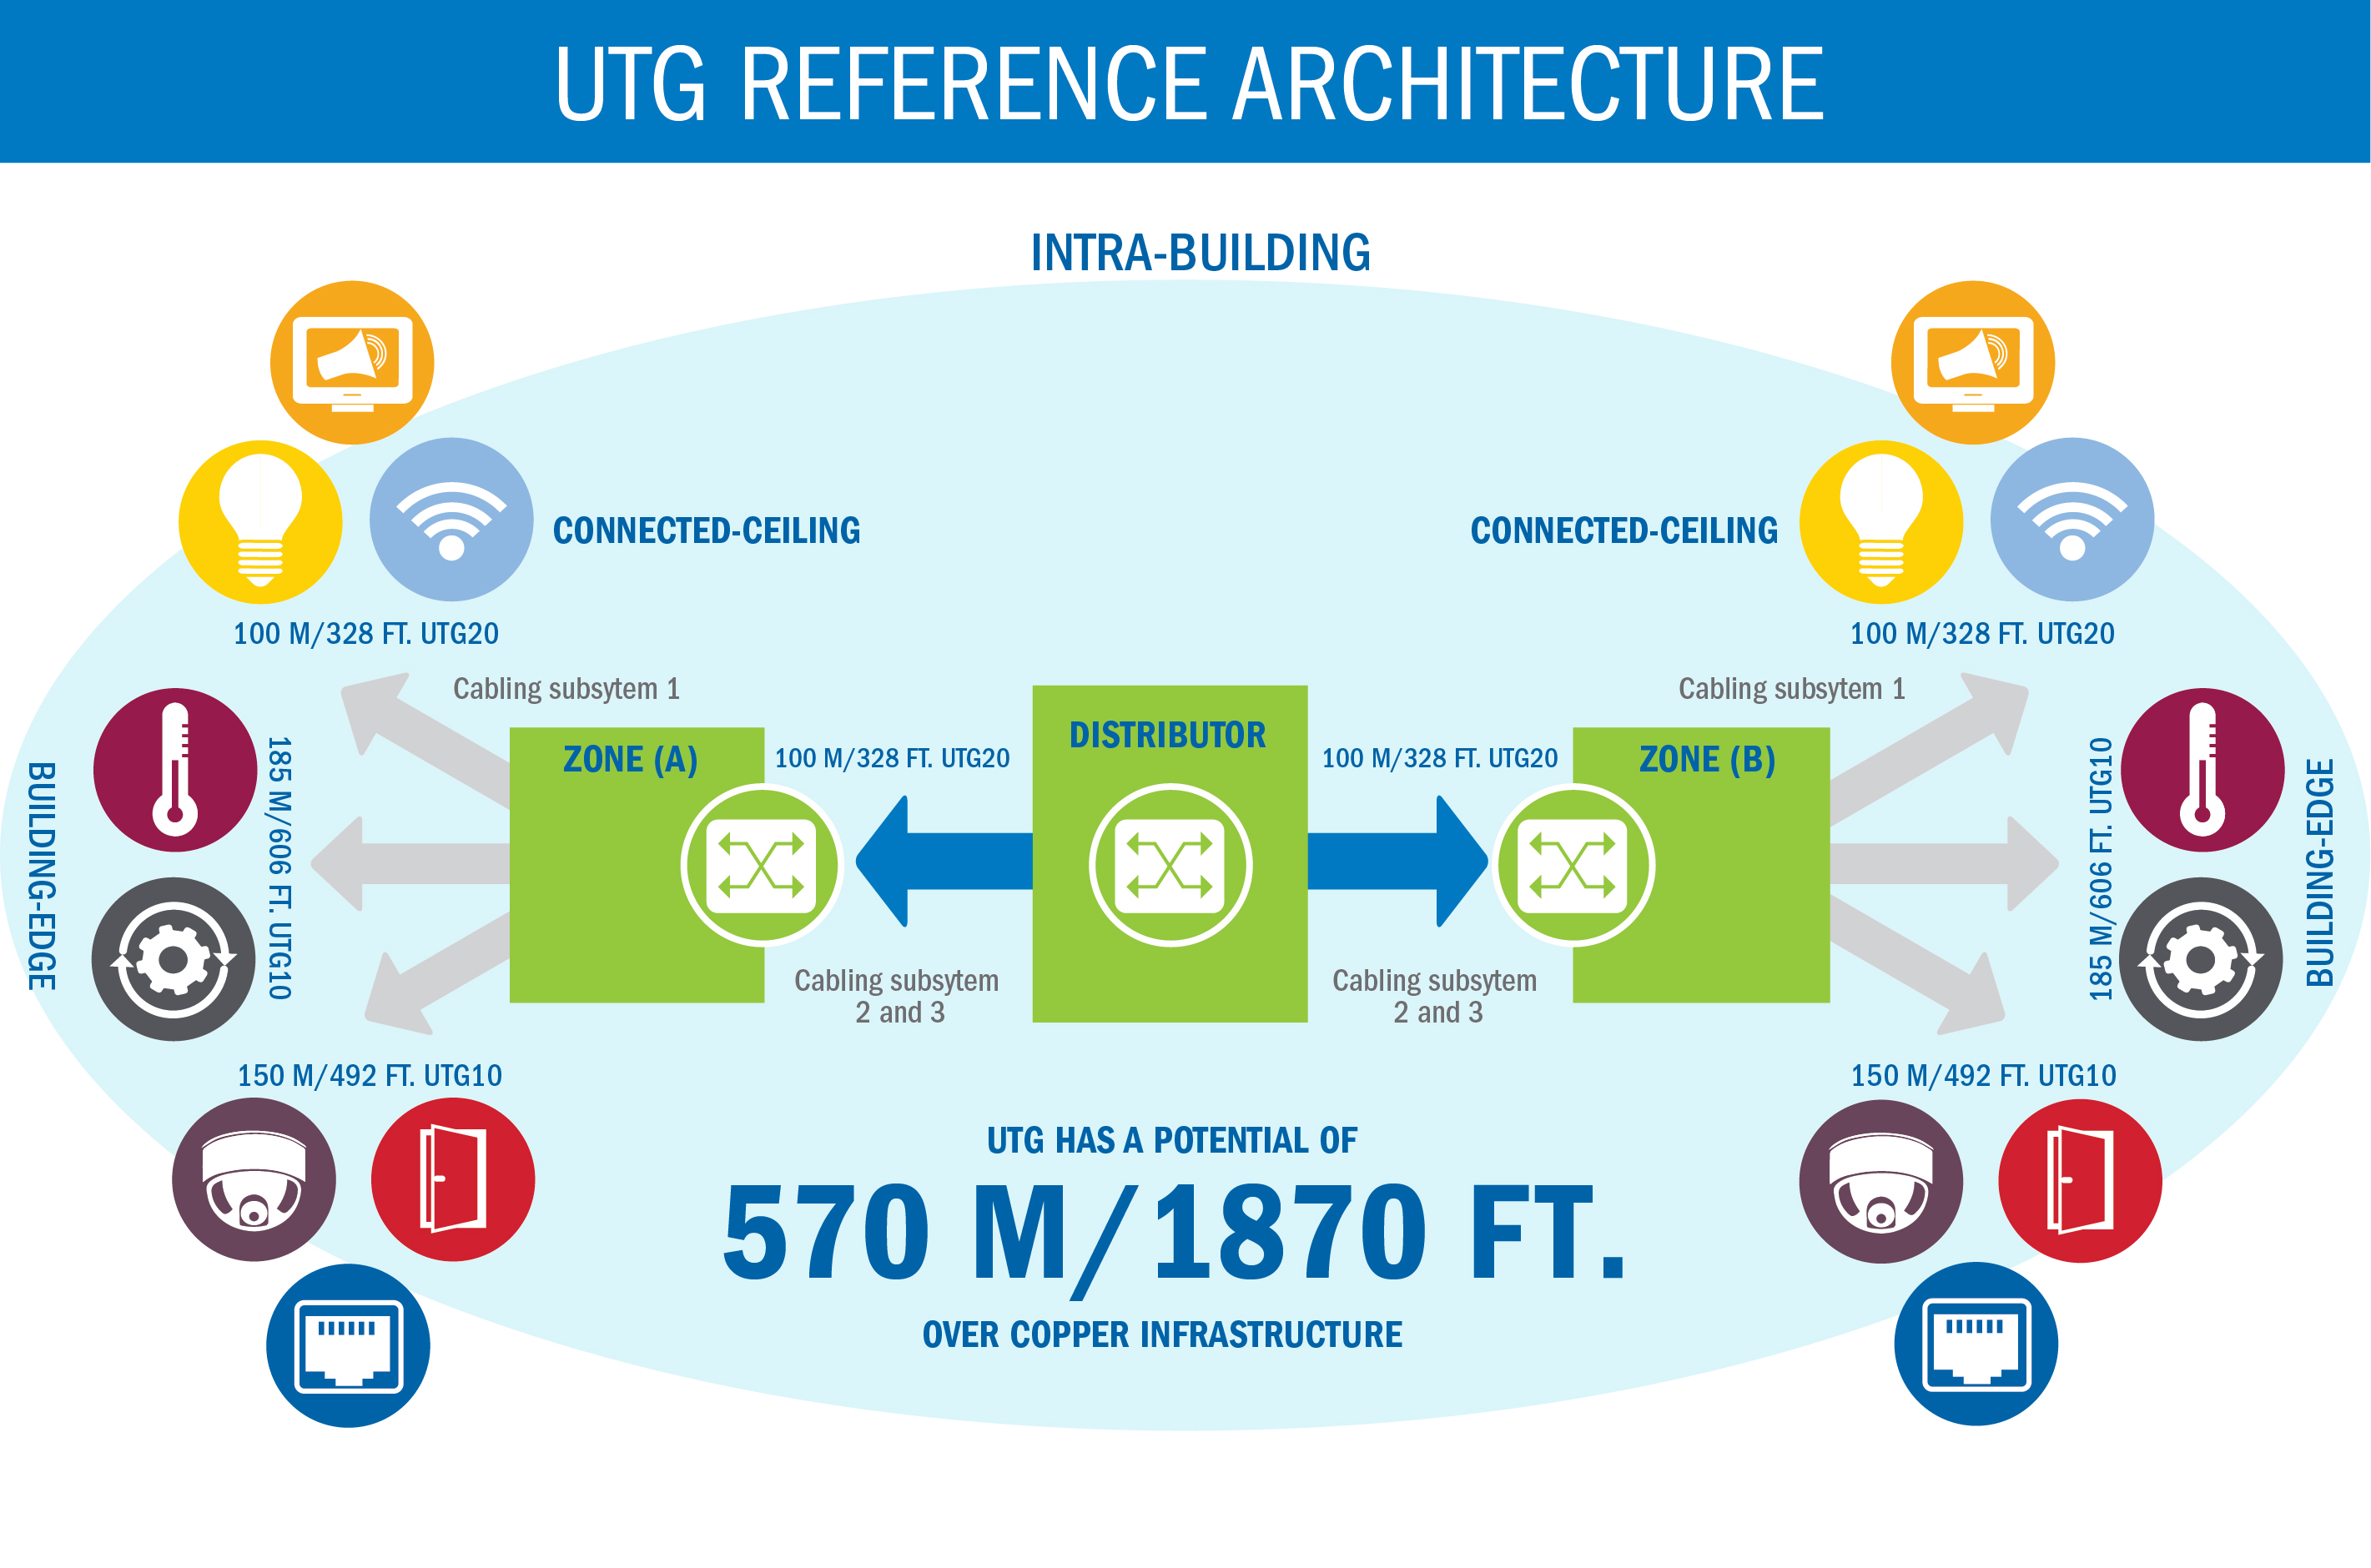 UTG reference architecture infographic